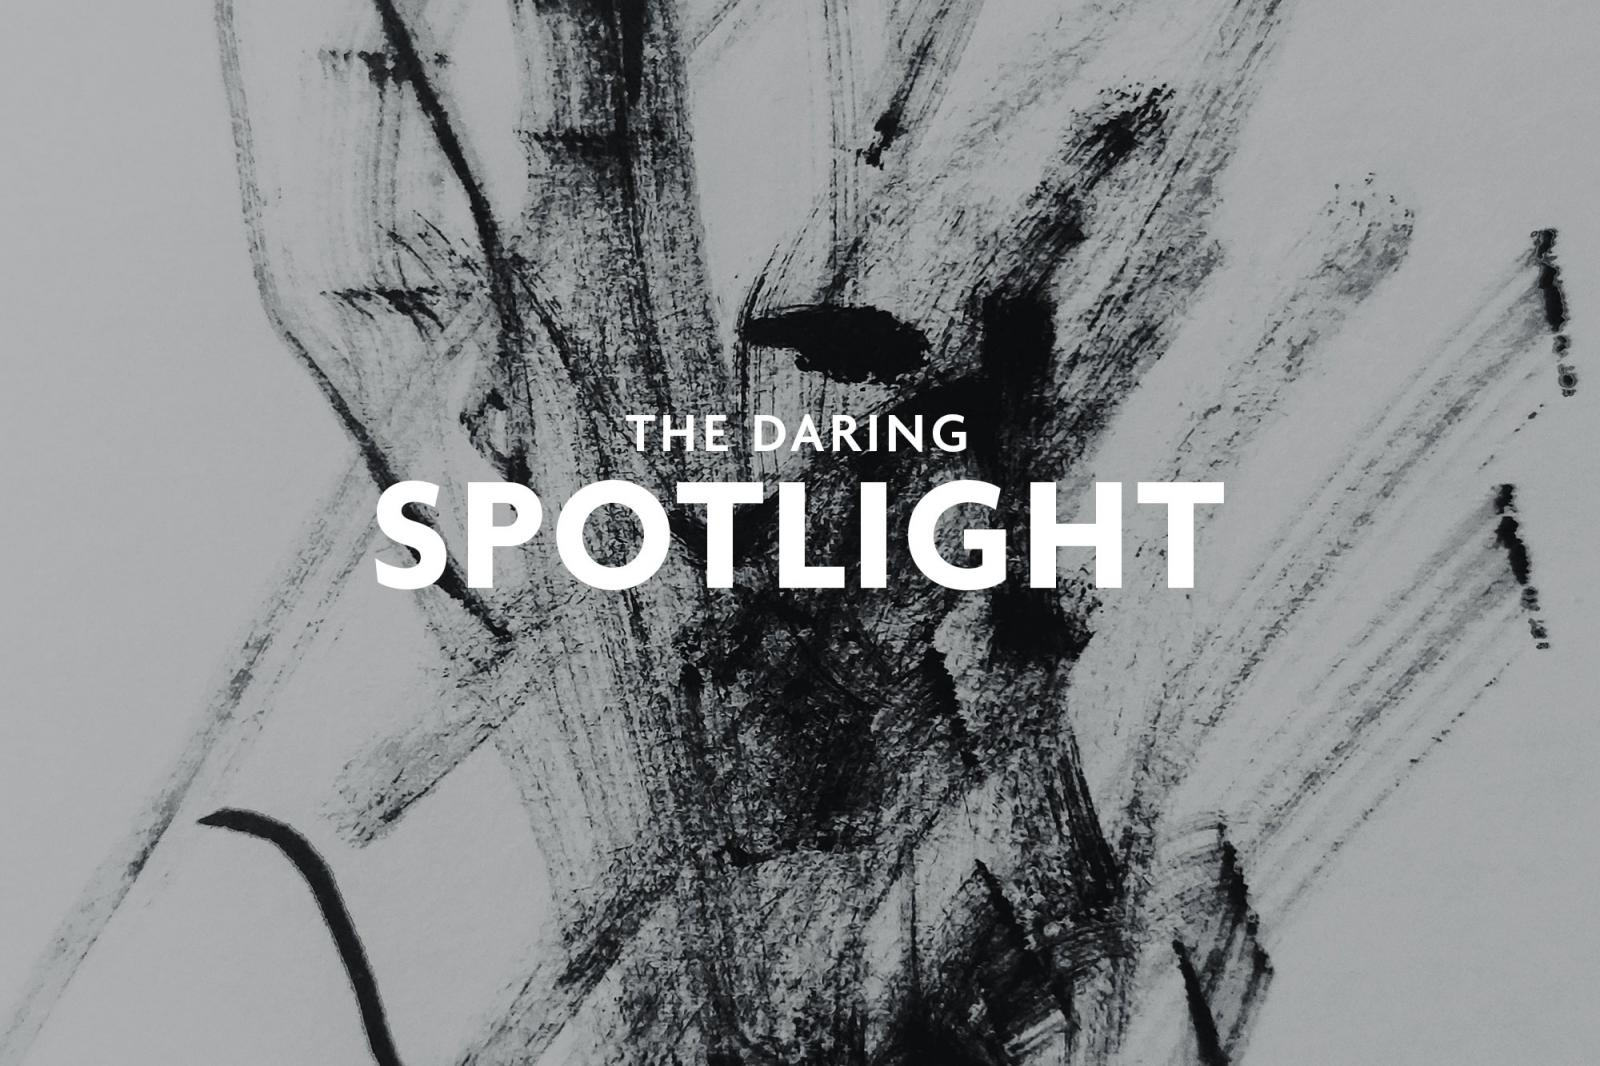 Photography image - Loading The-Daring-launch-Q_A-series-___The-Daring-Spotlight___-delivering-the-voices-of-storytellers-in-visual-media.jpg